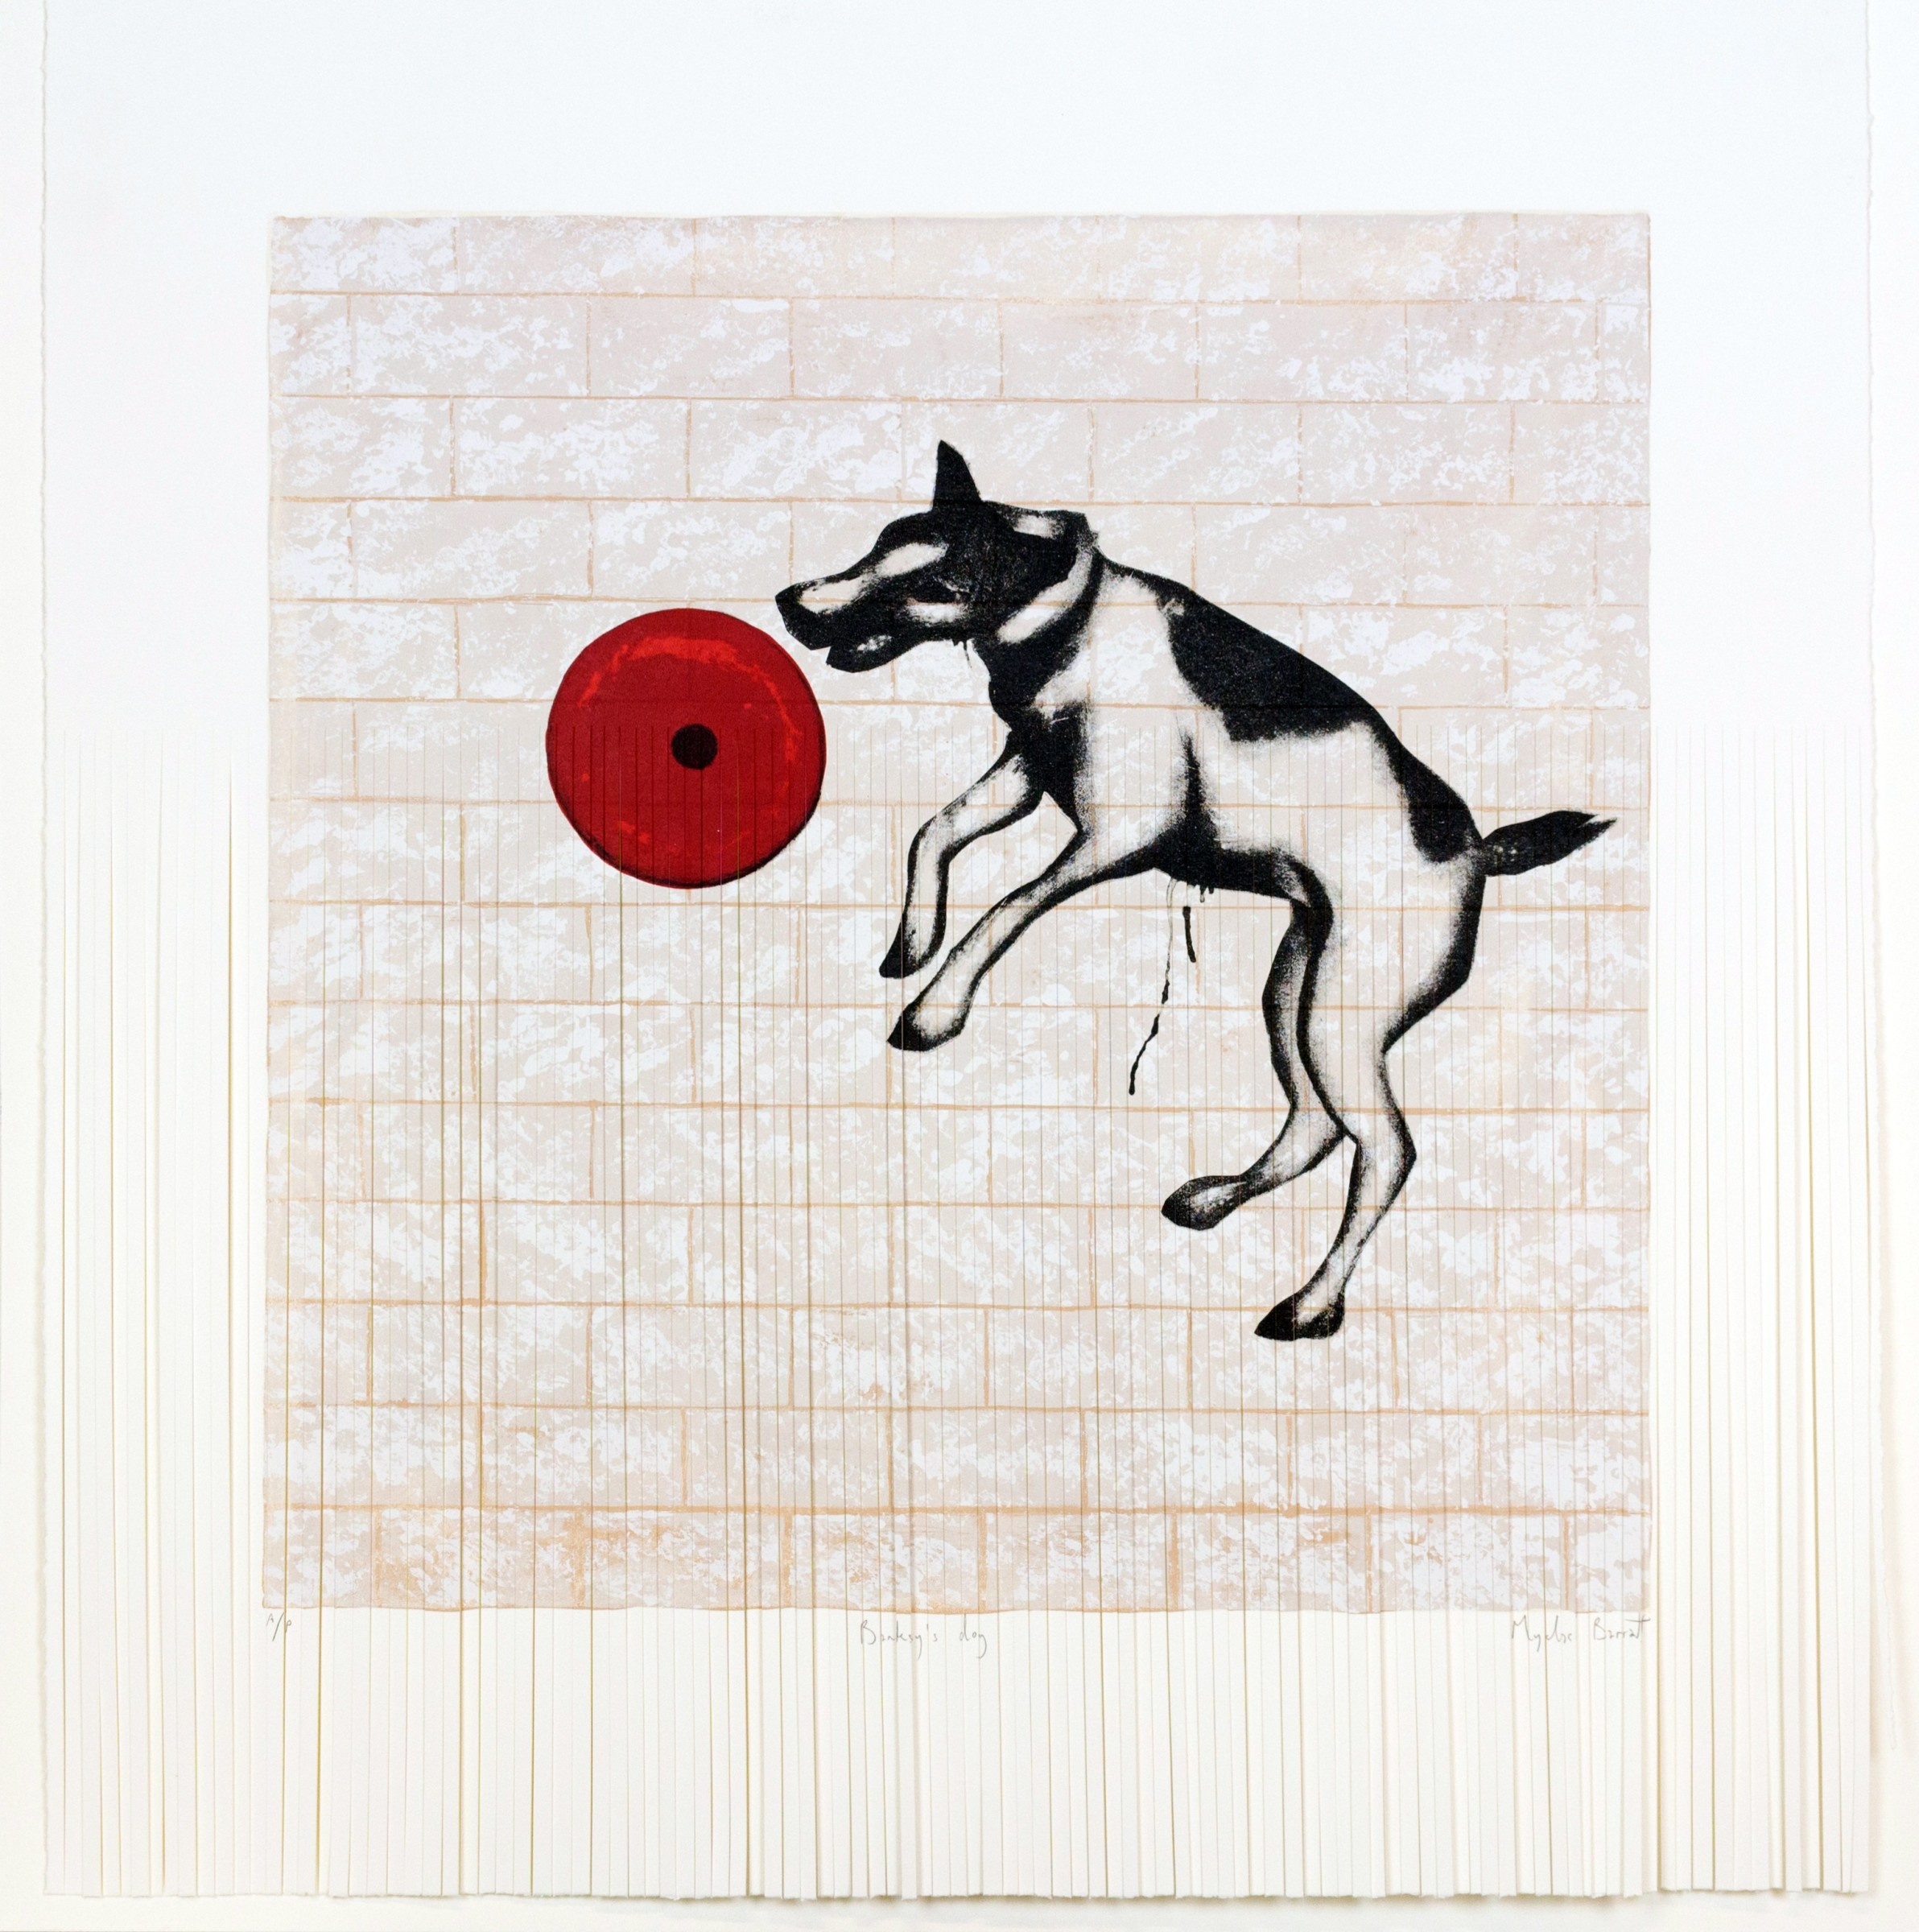 "<span class=""link fancybox-details-link""><a href=""/exhibitions/17/works/image_standalone612/"">View Detail Page</a></span><p><strong>Mychael Barratt</strong></p><p>Banksy's Dog (Shredded)</p><p>silkscreen & scapel, ed of 50</p><p>75 x 73cm </p><p>£600 framed</p><p>£500 unframed</p>"